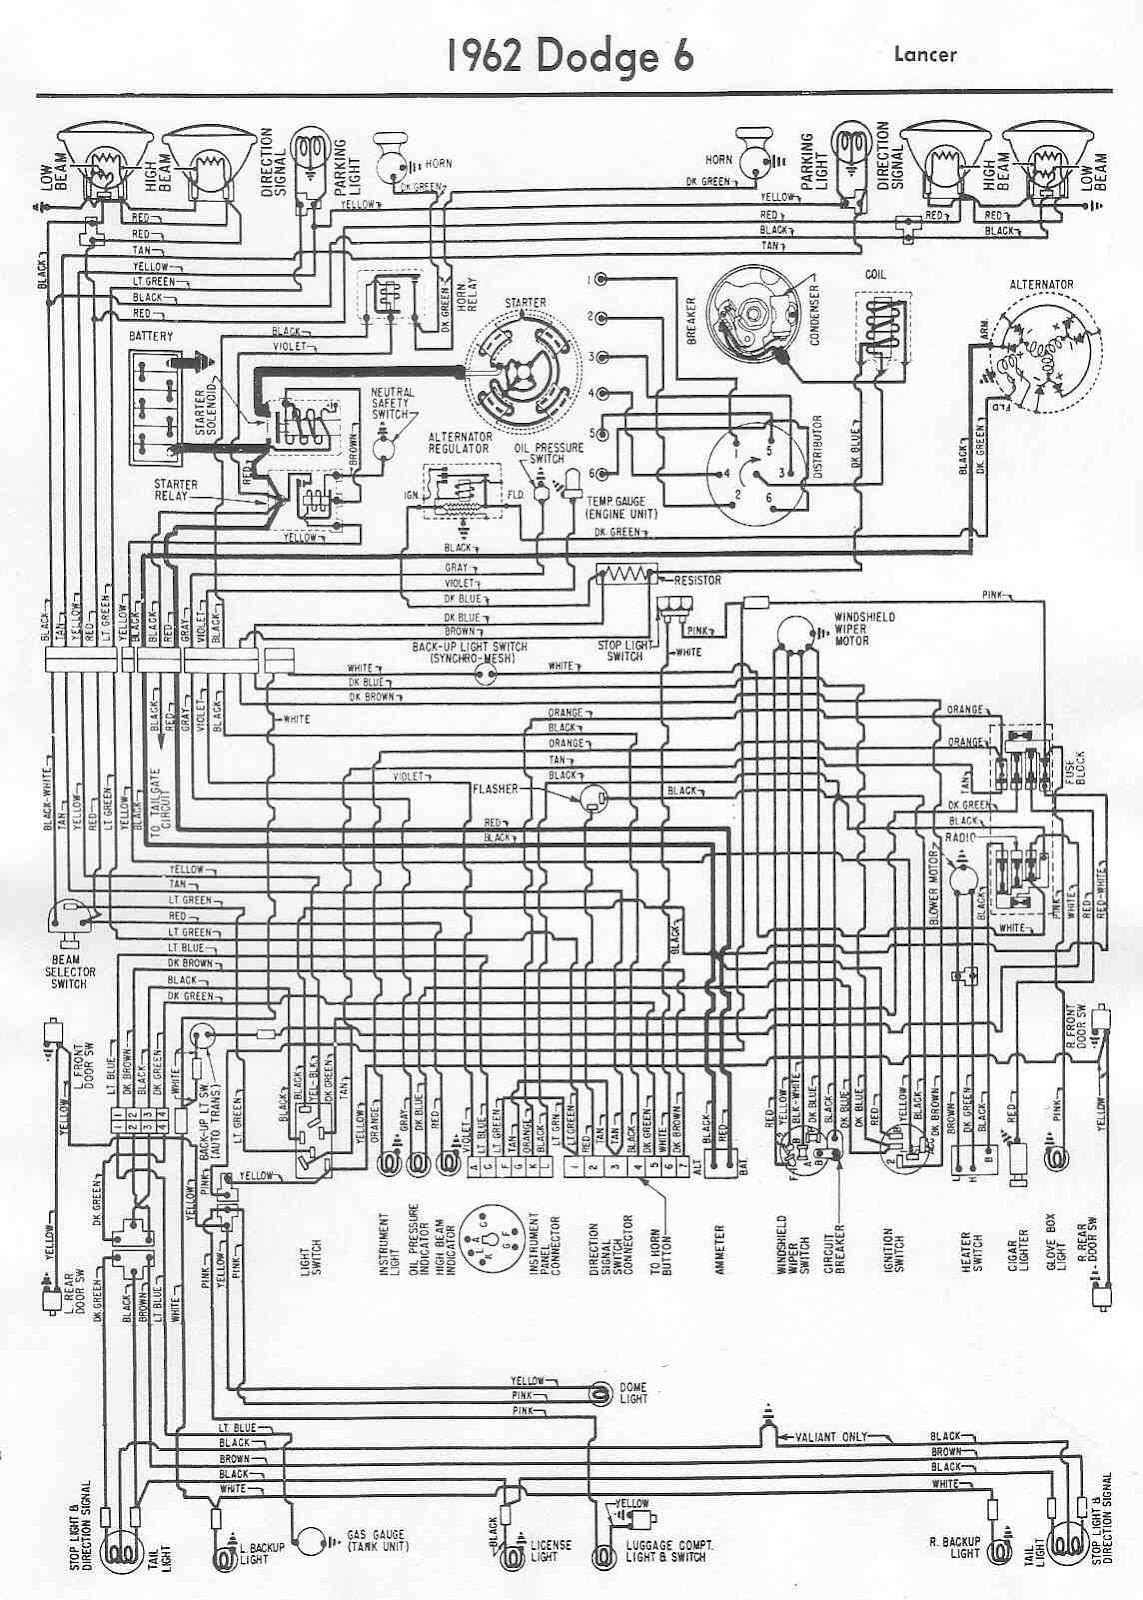 Dodge Lancer 1962 Complete Electrical Wiring Diagram | All